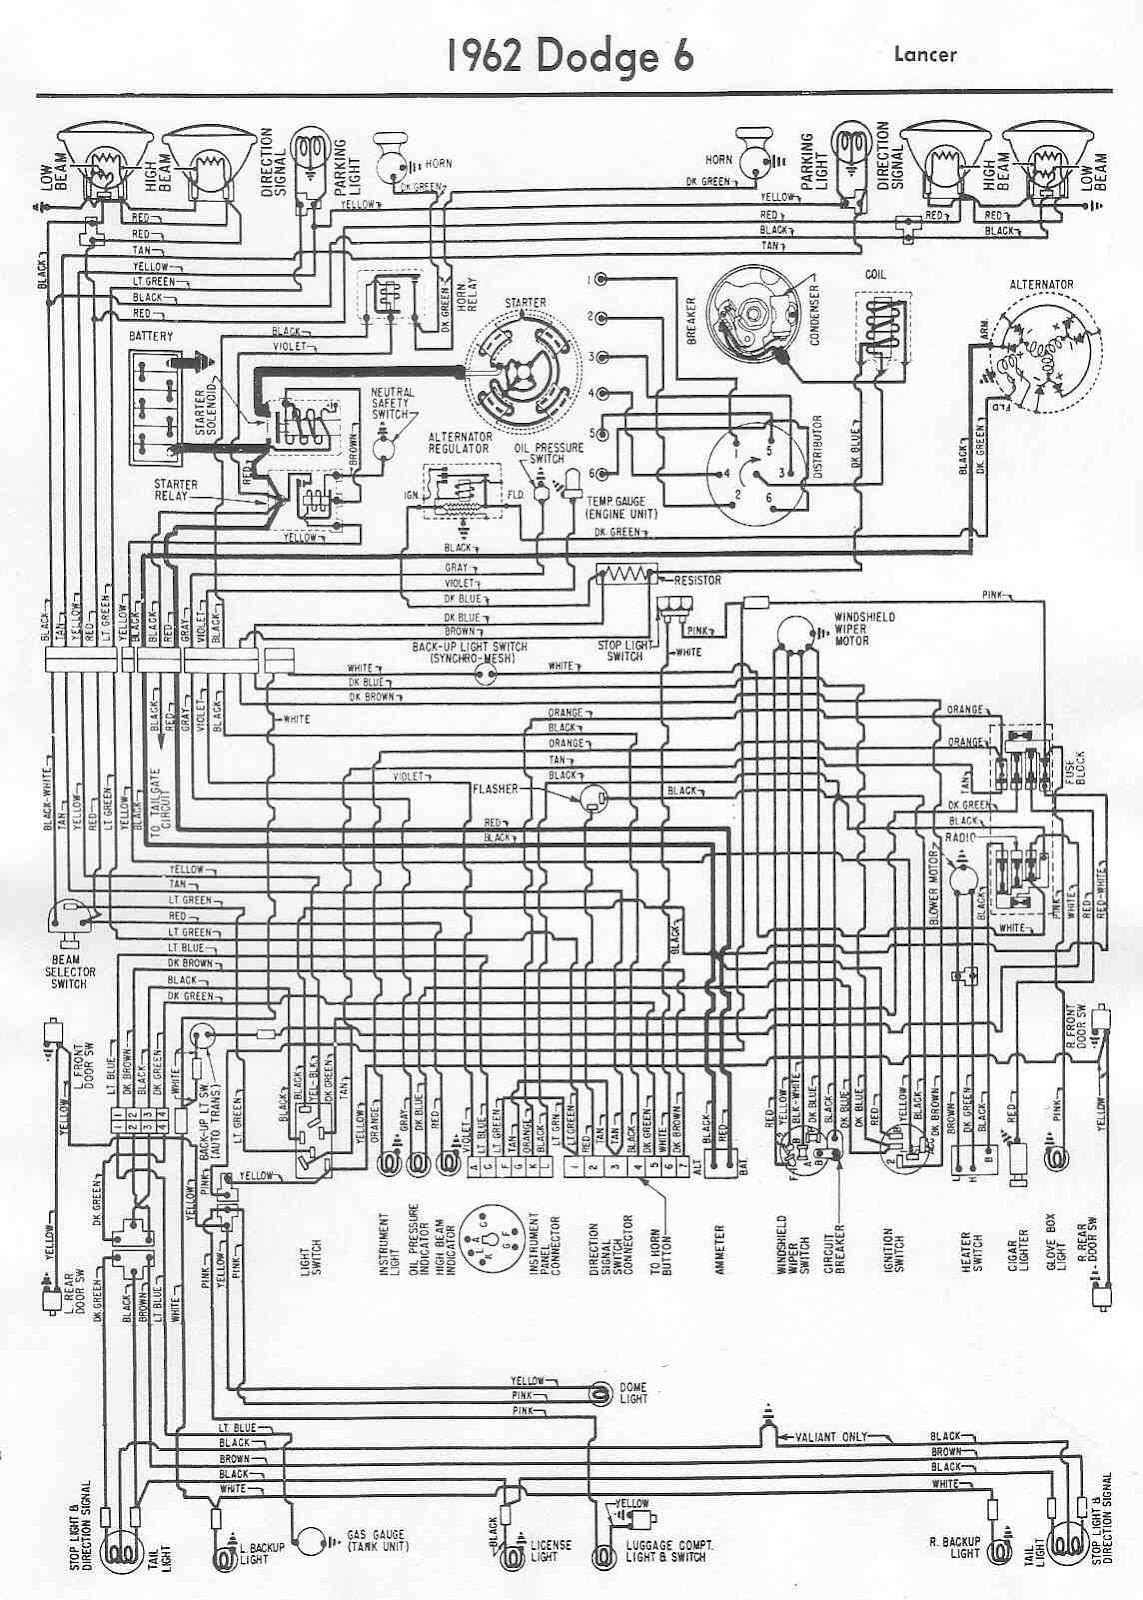 Dodge Lancer 1962 Complete Electrical Wiring Diagram | All